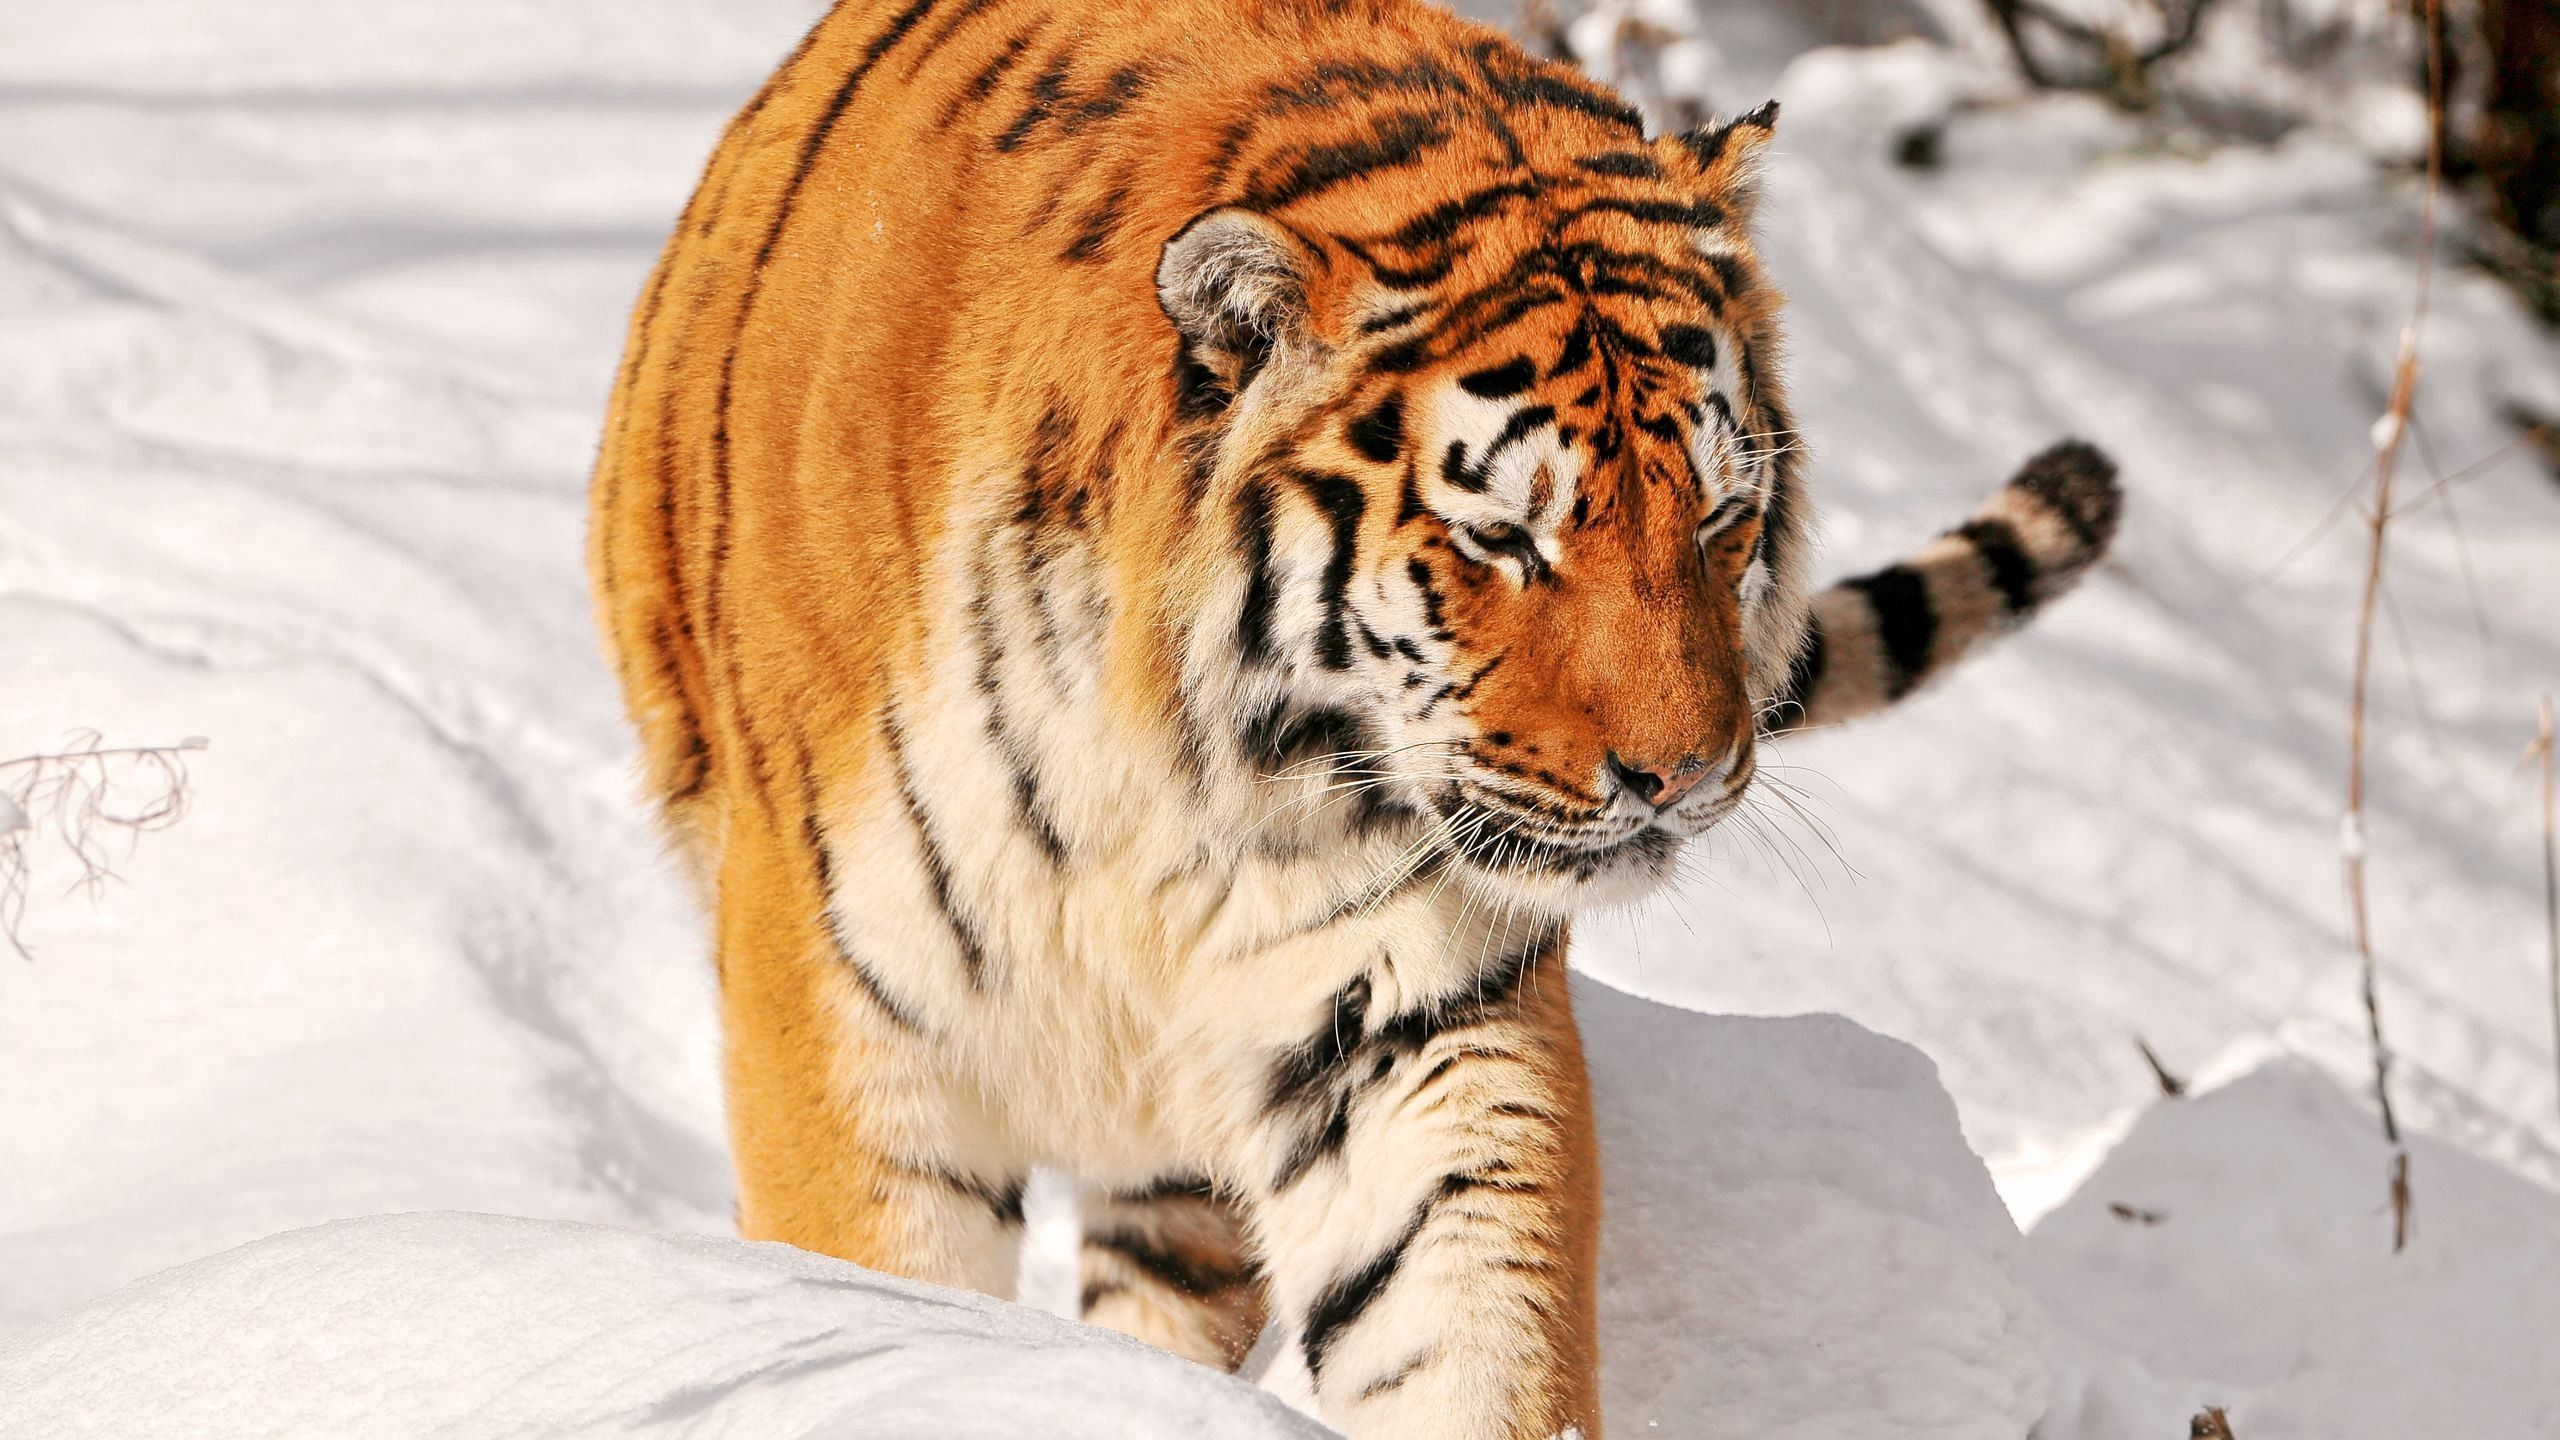 100531 download wallpaper Animals, Tiger, Snow, Stroll, Predator screensavers and pictures for free